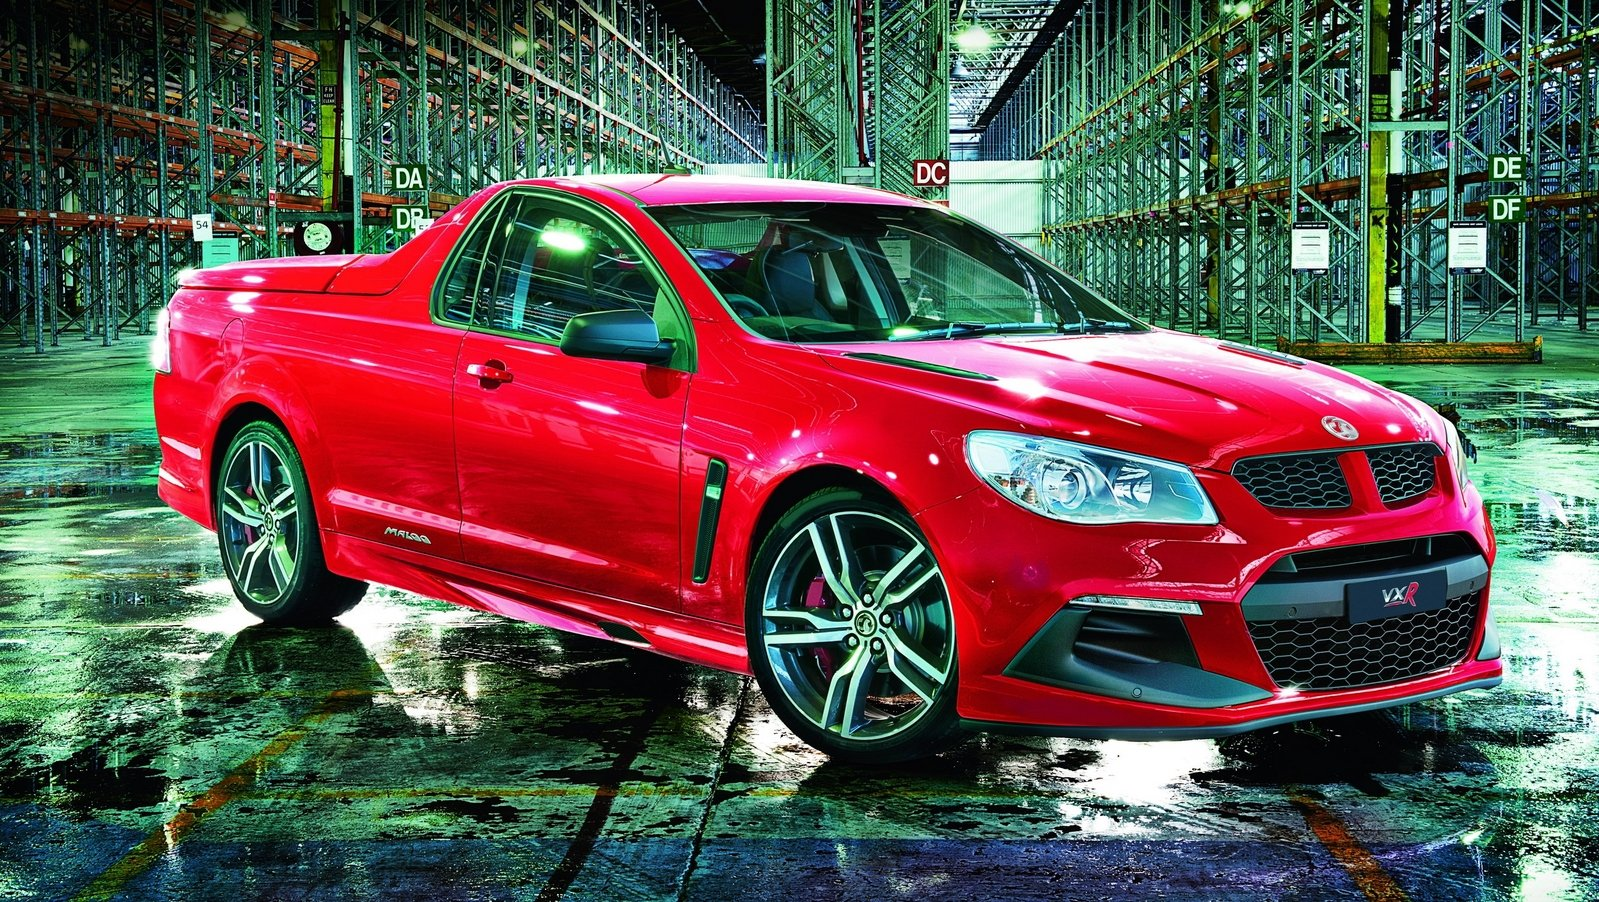 Commercial Vehicle Manufacturers Reviews 2016 Vauxhall Maloo Lsa Gallery 660099 Top Speed